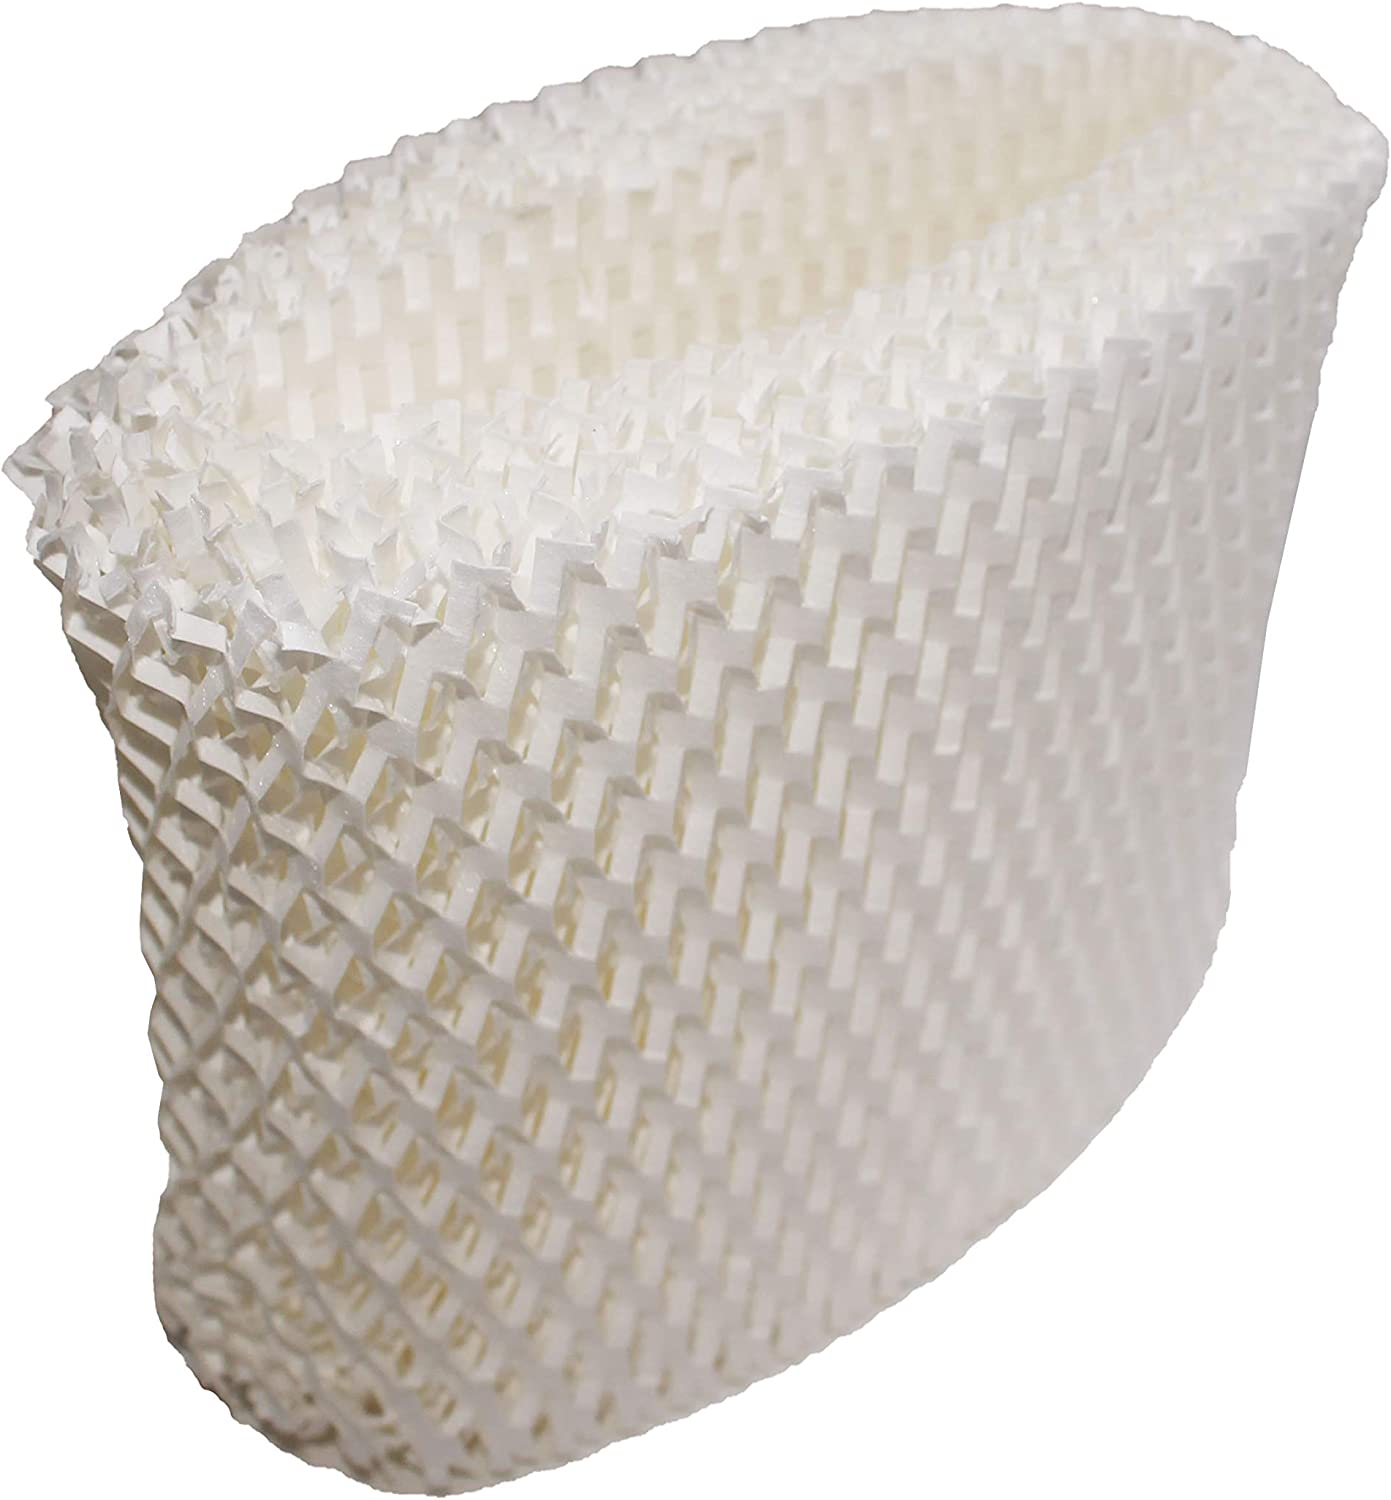 LifeSupplyUSA Replacement Humidifier Wick Filter C fits Honeywell Duracraft HC 888 Series HCM 890 HCM 890C HCM 890B